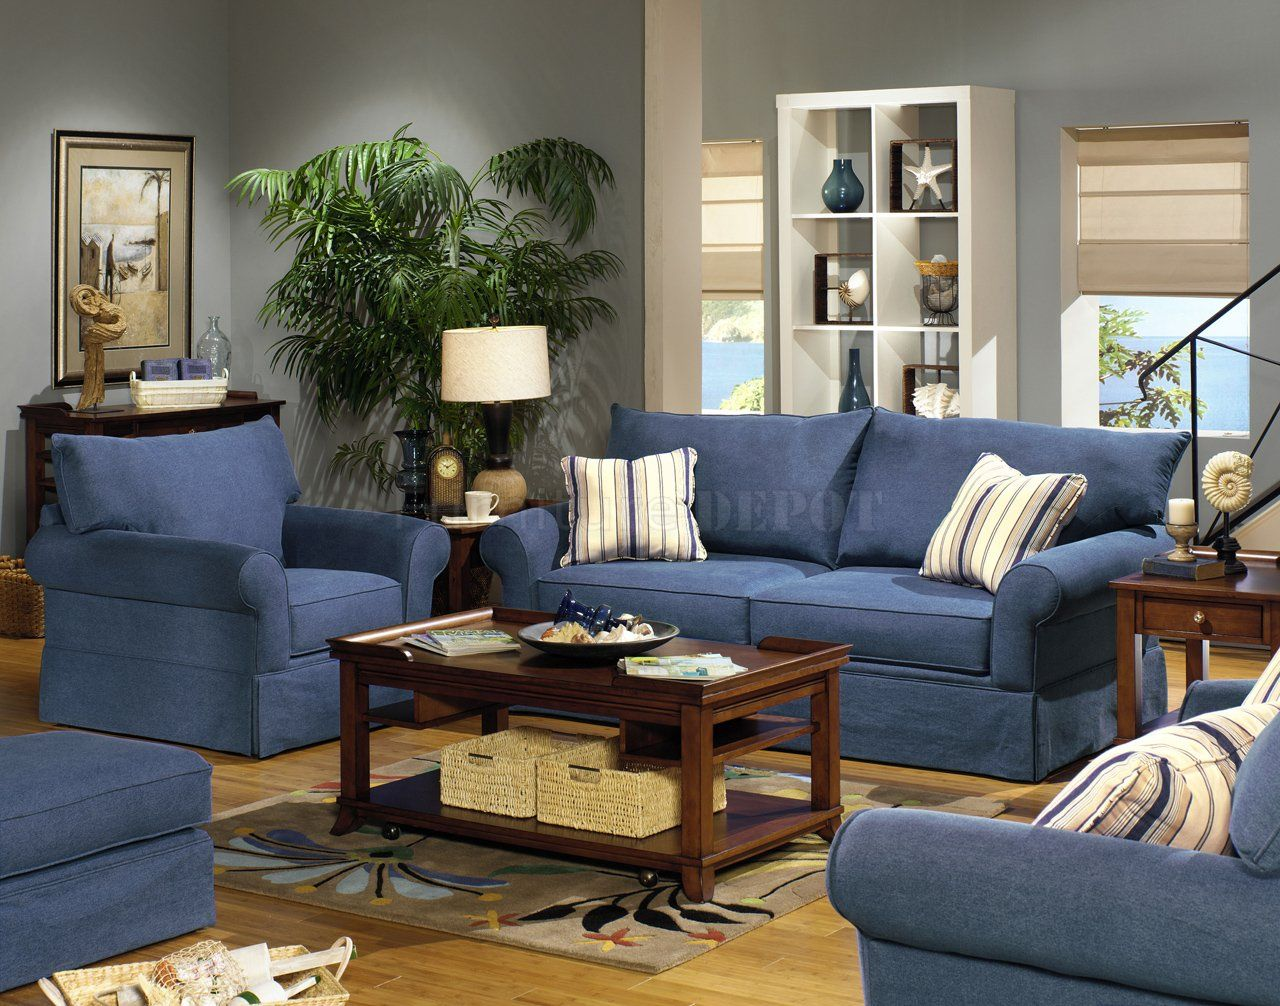 Blue Denim Fabric Modern Sofa Loveseat Set W Options Blue Couch Living Room Living Room Sets Furniture Blue Couch Living